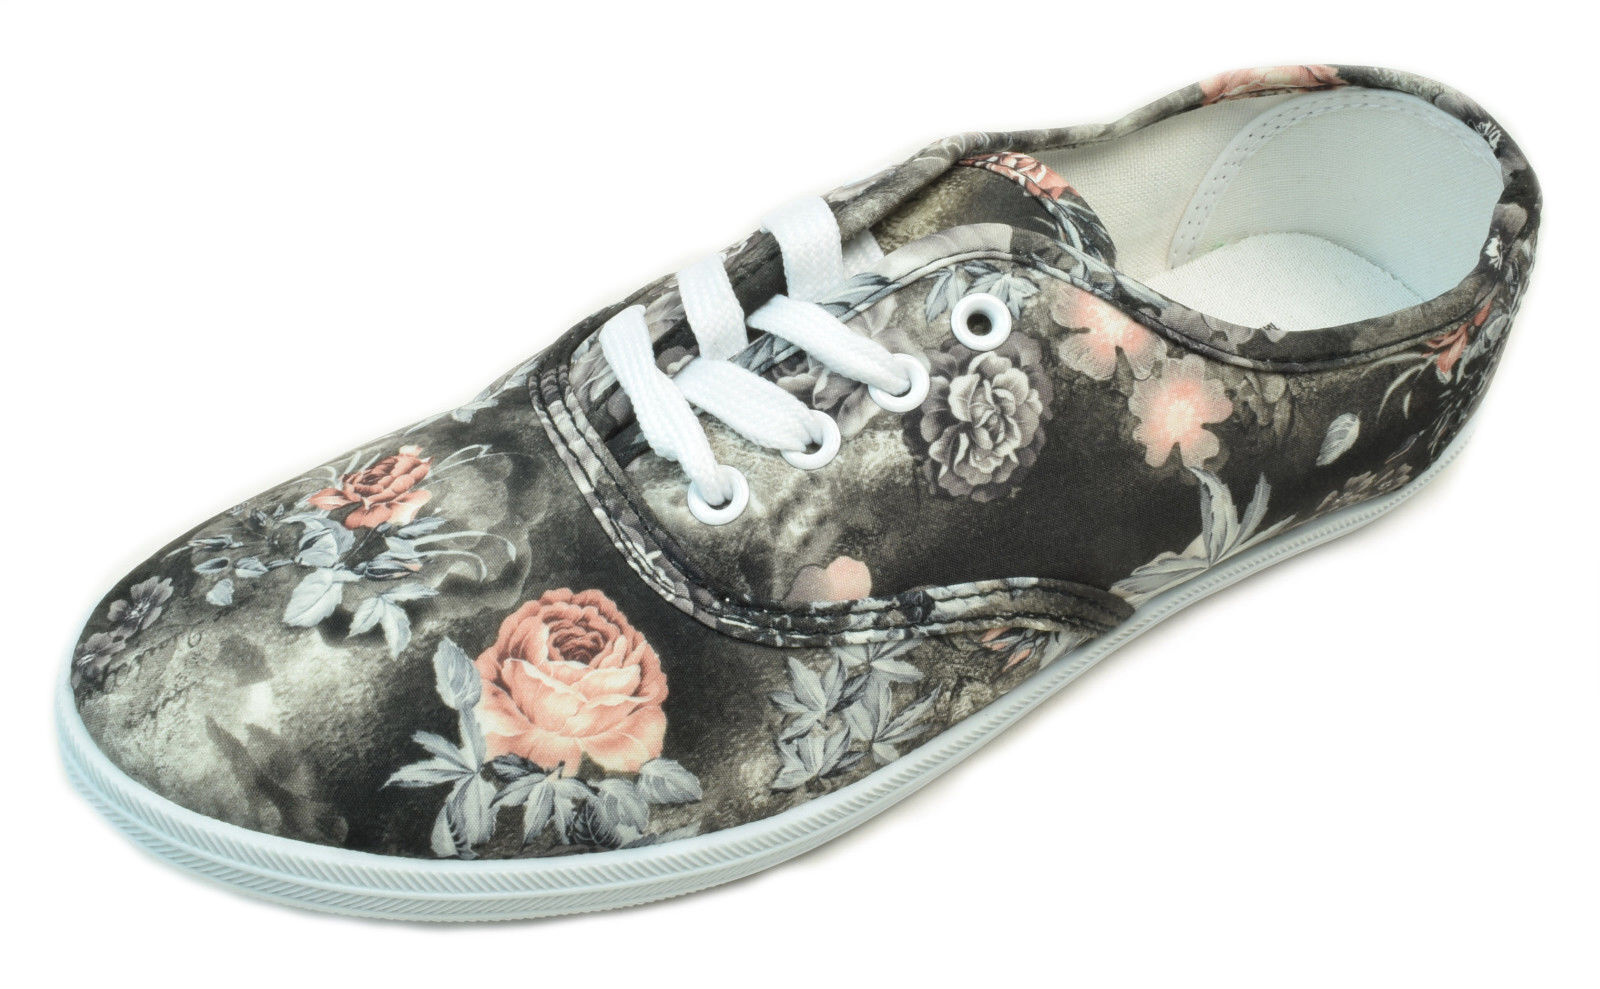 Primary image for Womens Gray Pink Floral Print Canvas Sneaker Lace Up Plimsoll Tennis Shoes